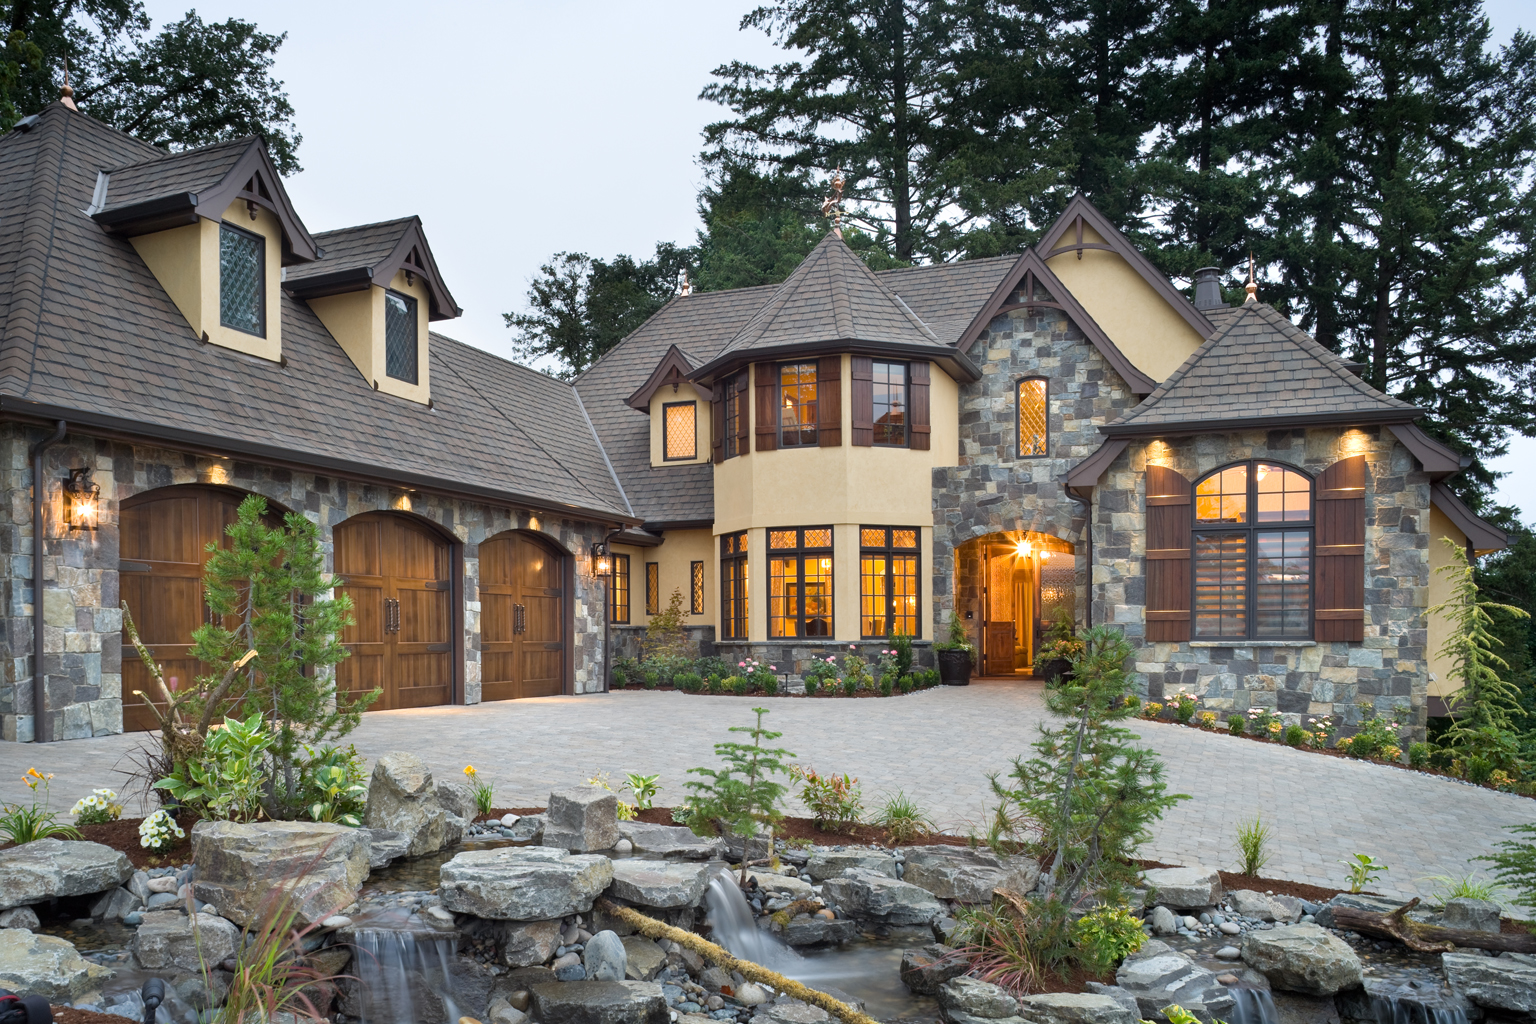 Rivendell Manor by BC Custom Homes represents Mascord s 30th Portland Street of Dreams Home Design